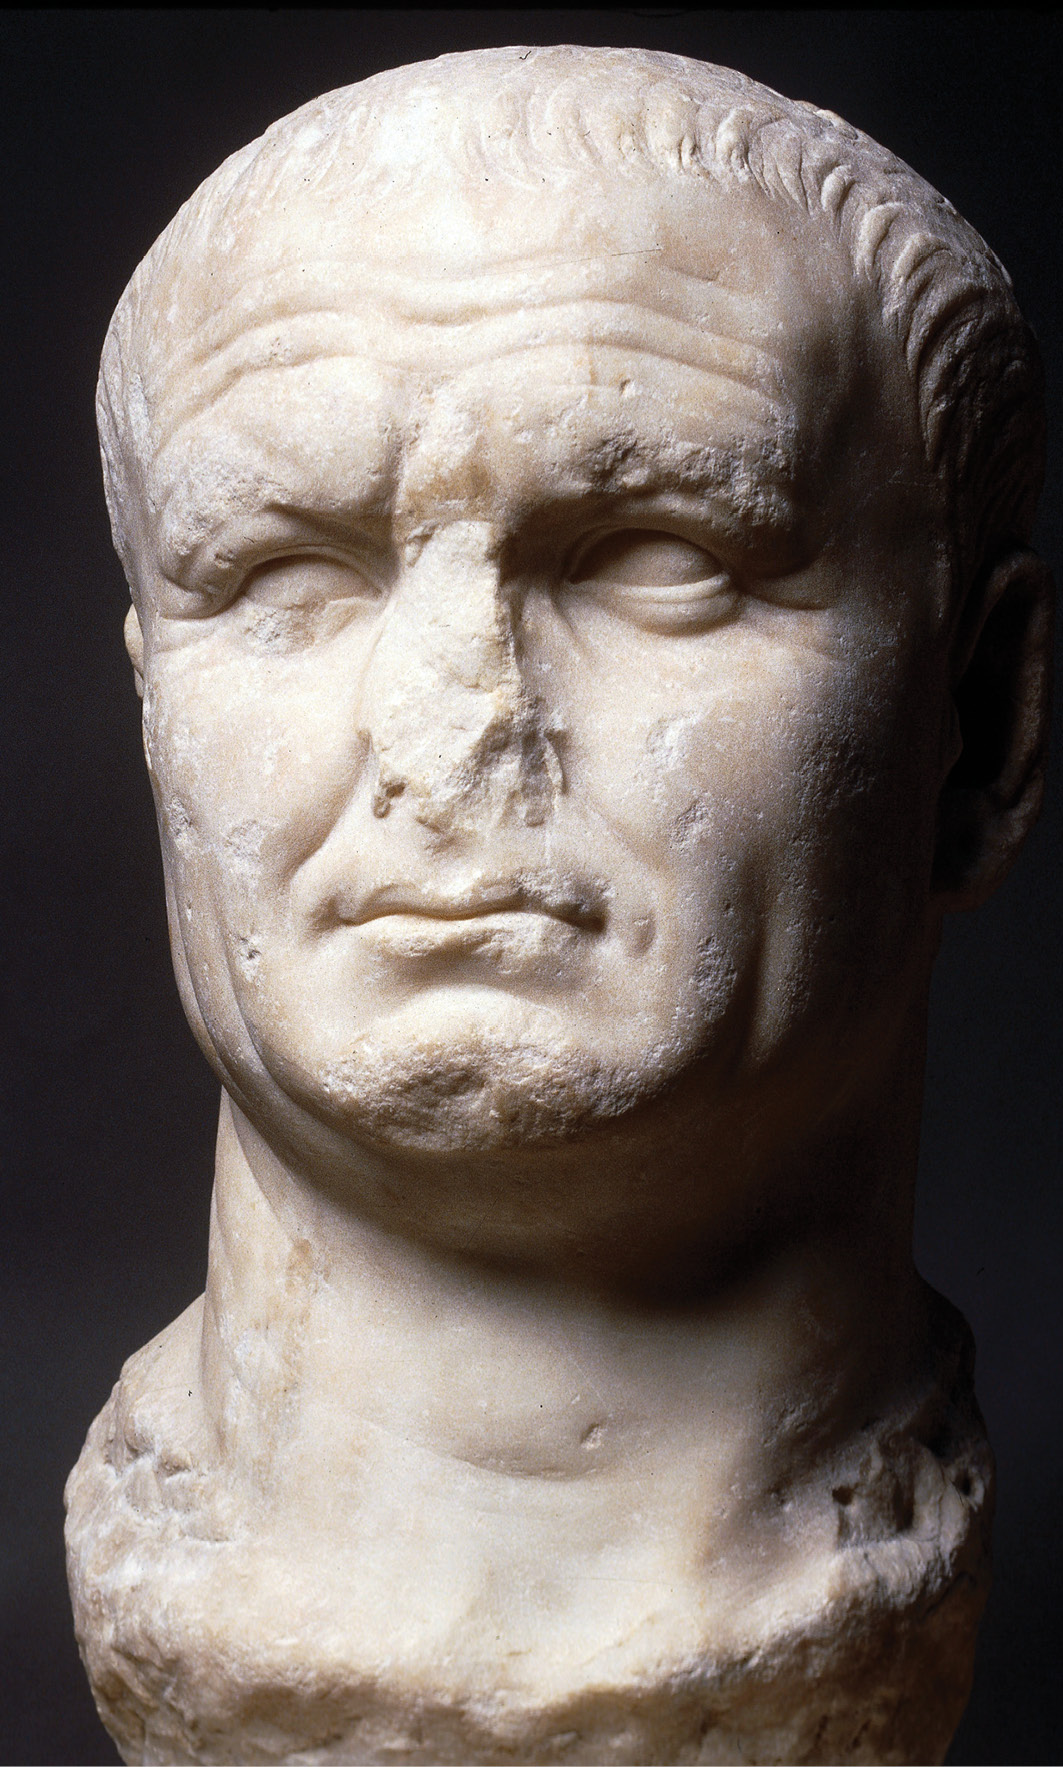 right Portrait head of Vespasian from Carthage, Tunisia, carved from a head of Nero. Marble, AD 70-80. Size: 45.7 x 26 x 23.5cm